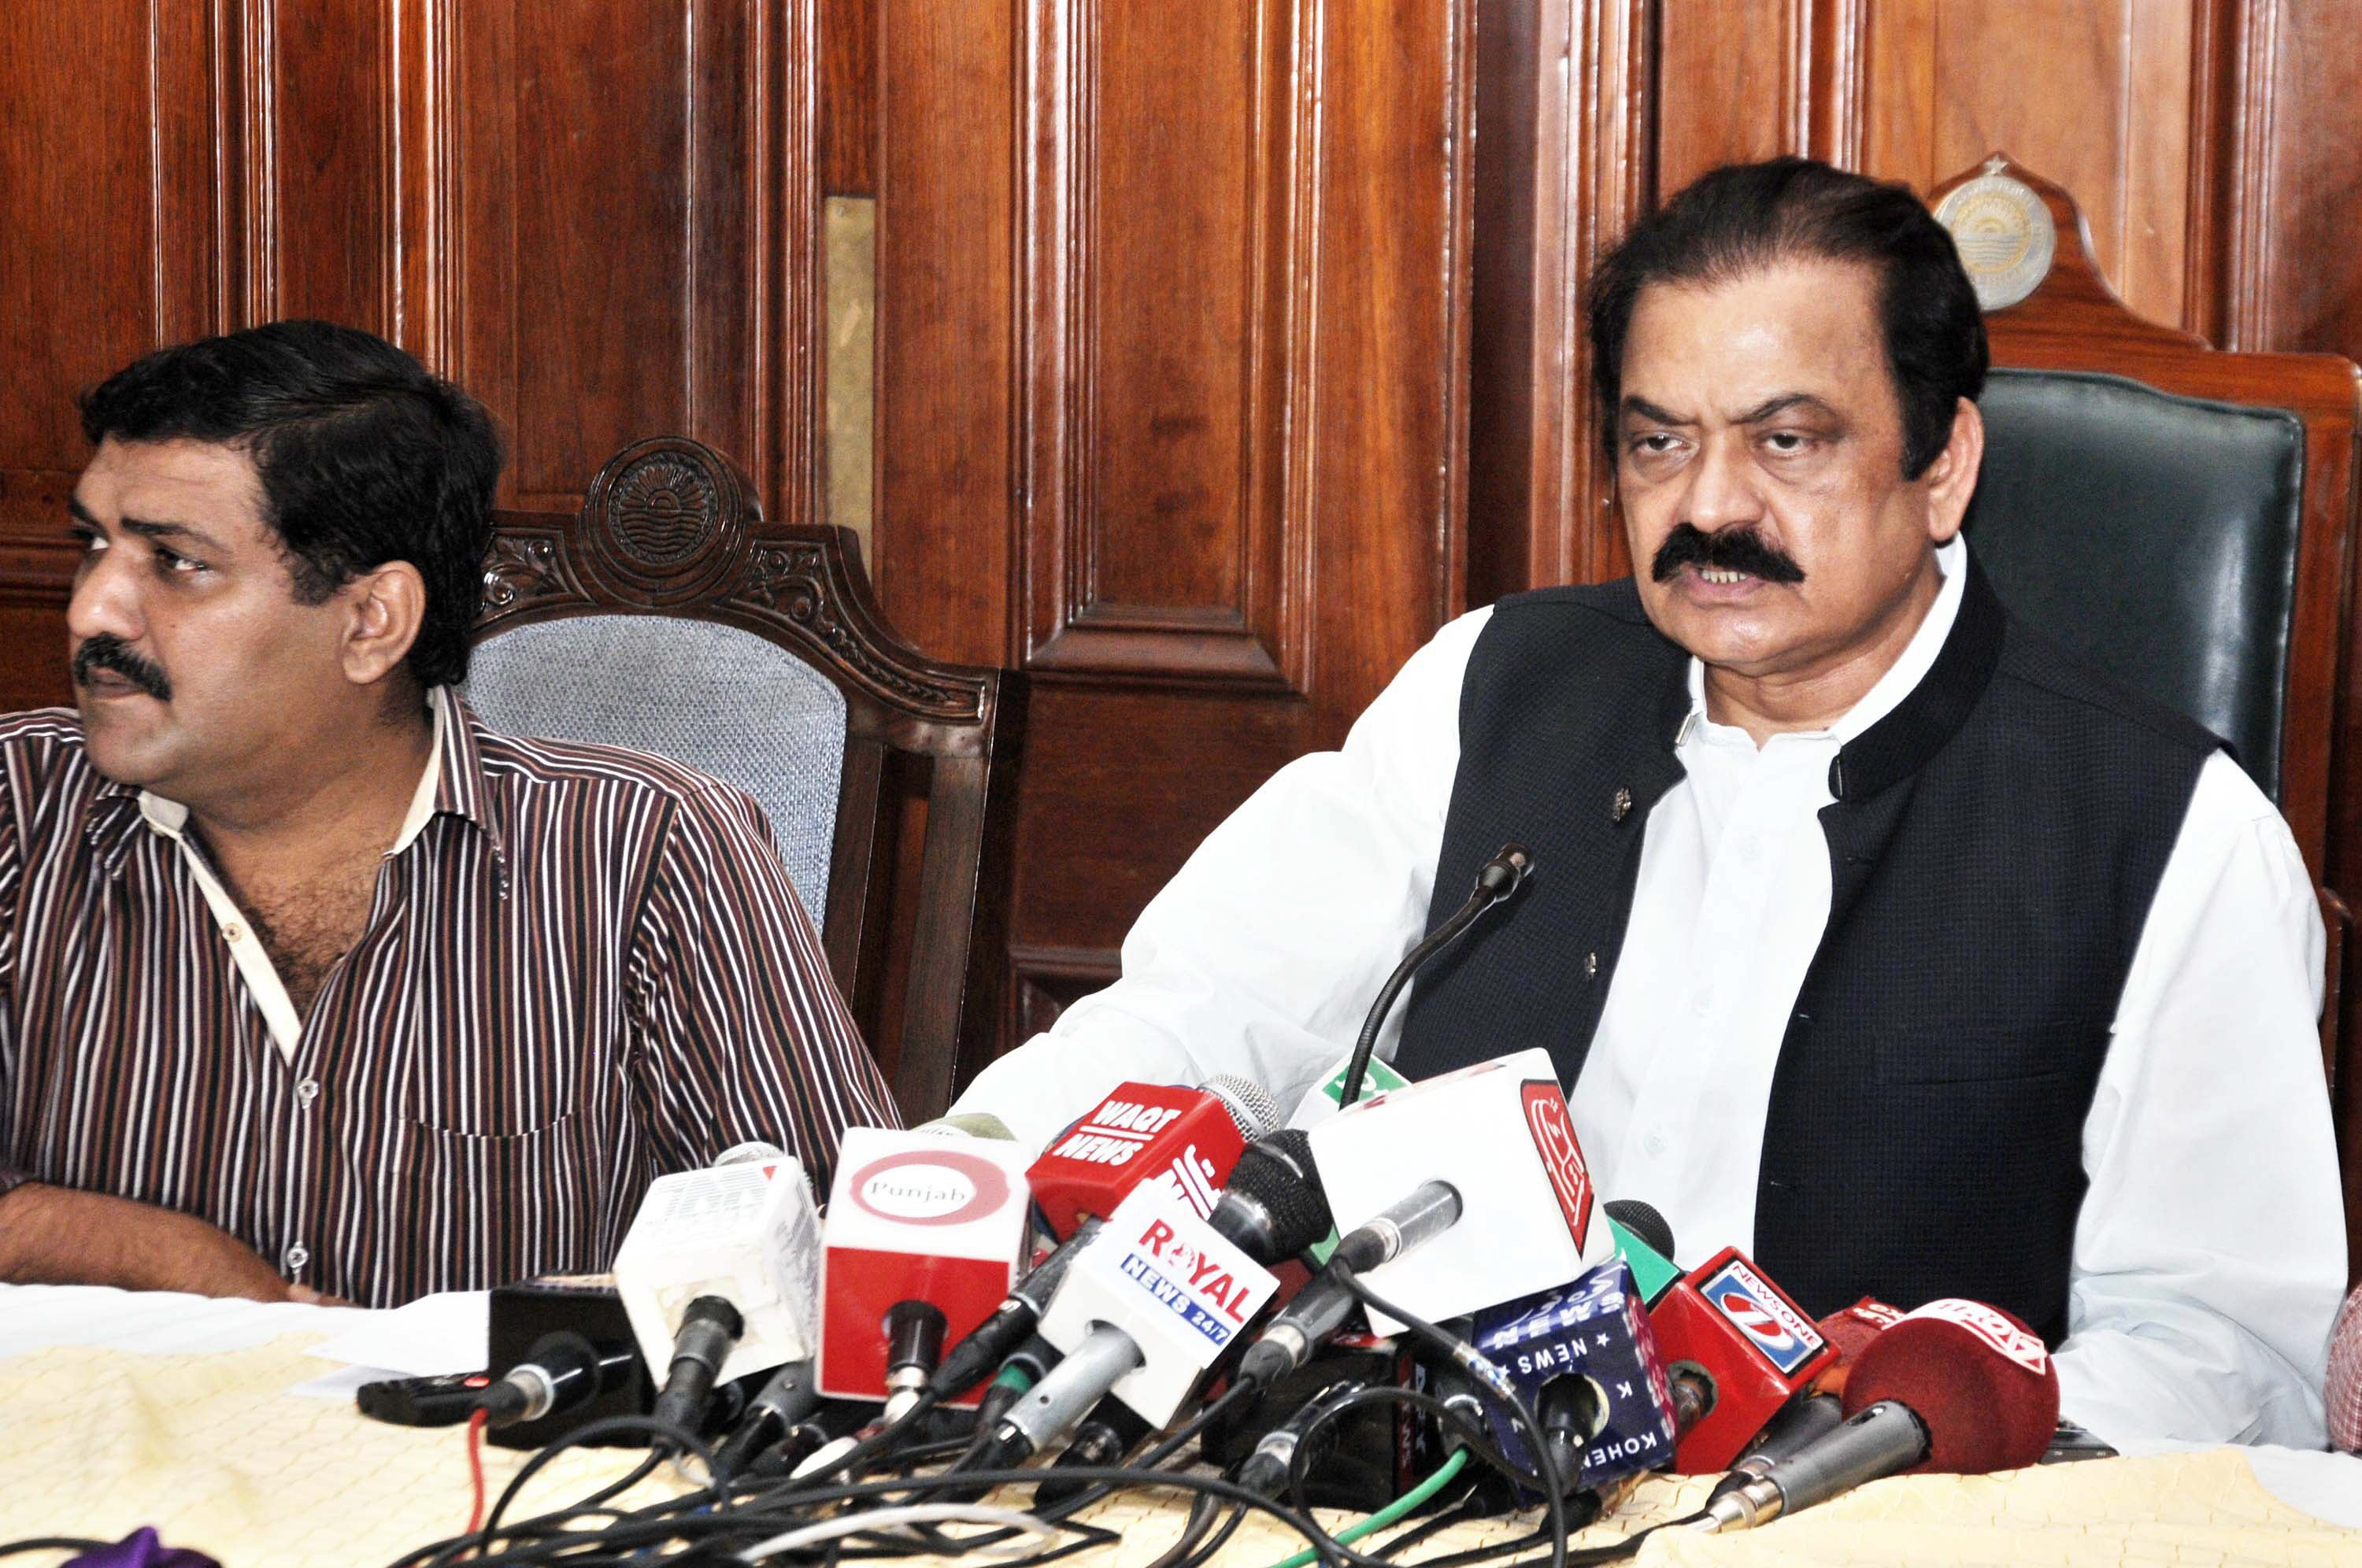 punjab law minister rana sanaullah addresses a press conference at the punjab assembly in lahore on august 25 2015 photo waseem nazir express